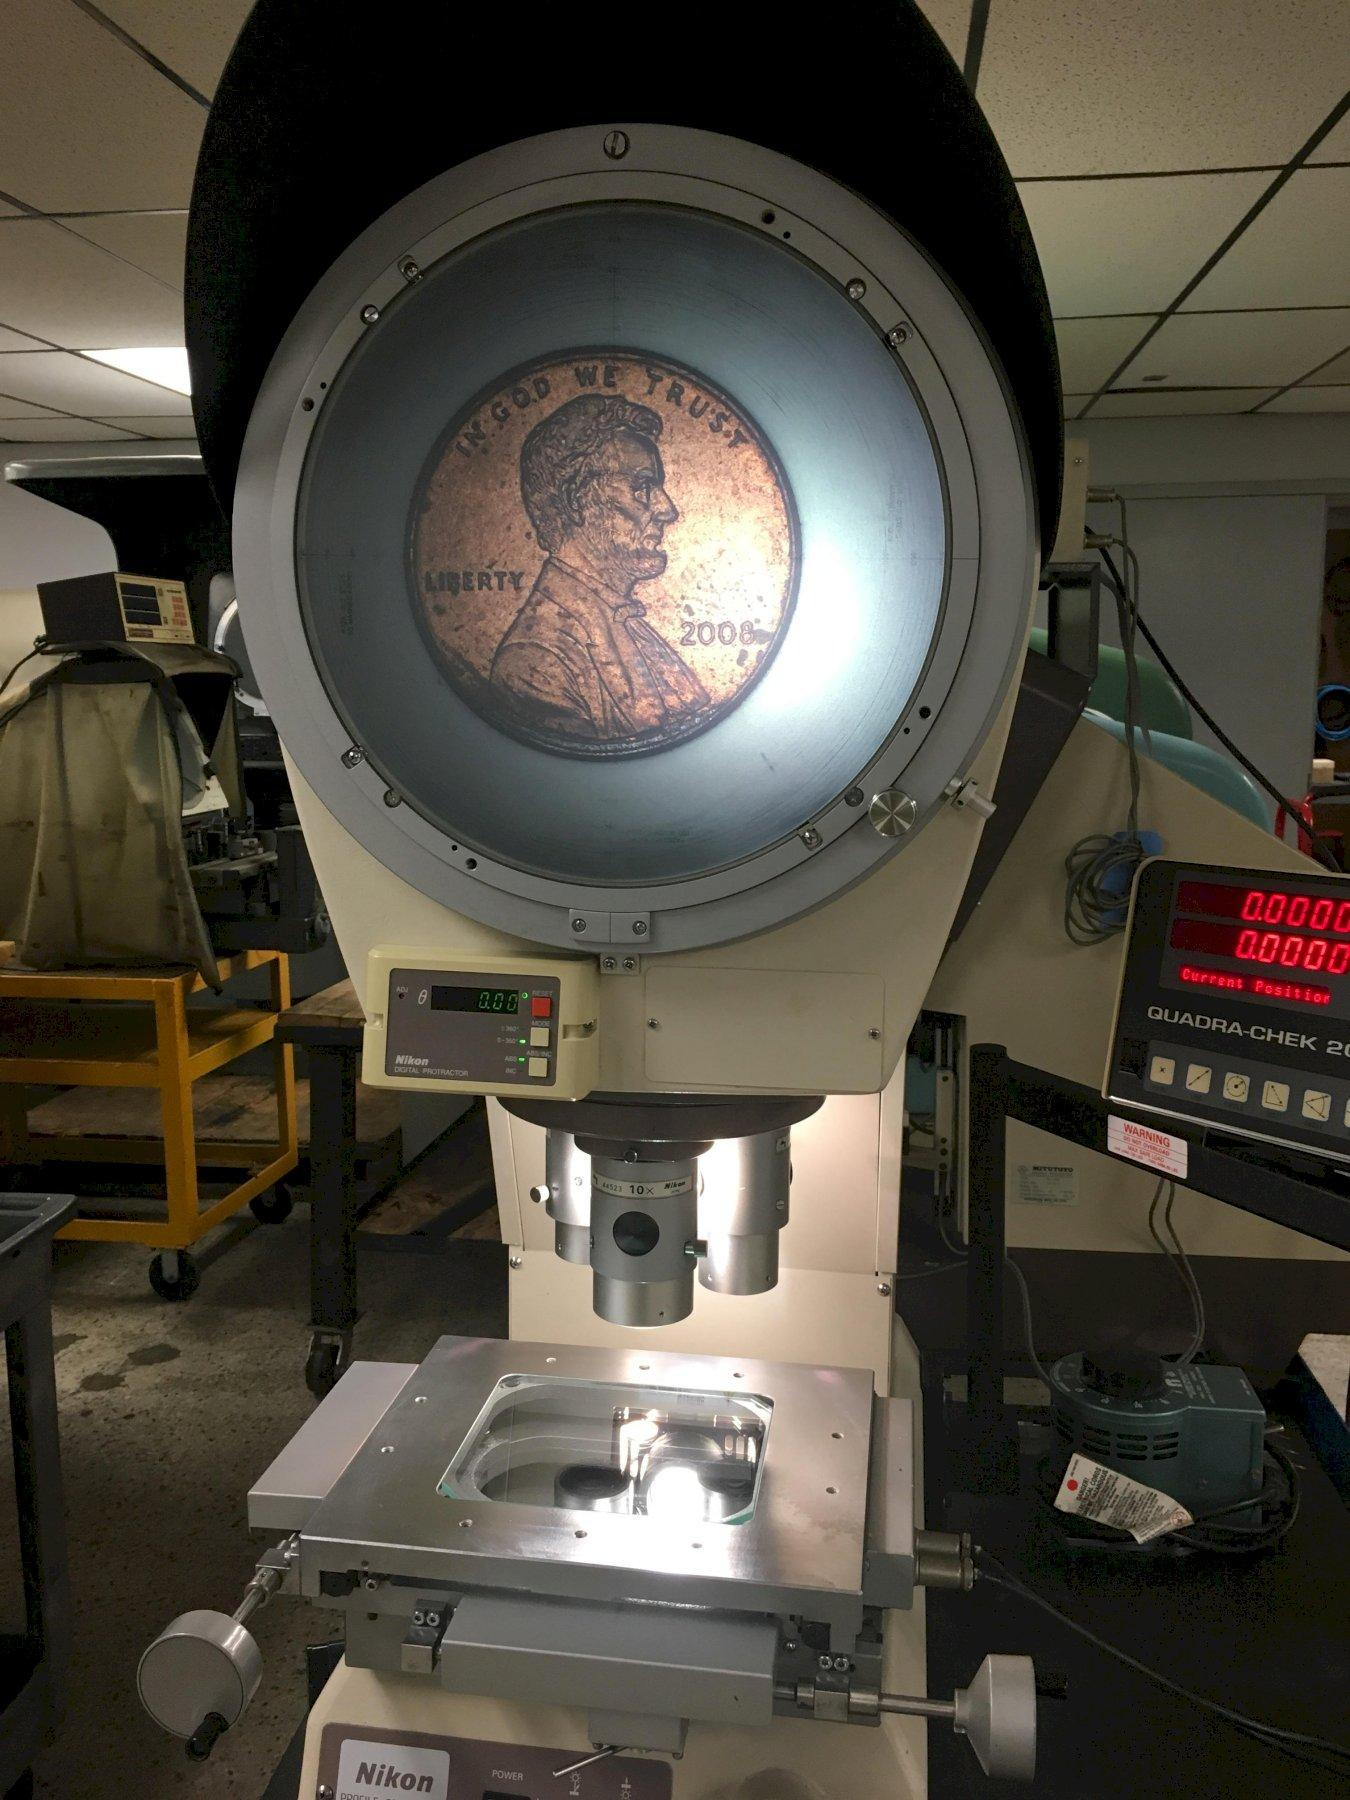 """12"""" NIKON Model V-12BD Bench Top Vertical Beam Comparator, S/N 1100364, New Approx 1998."""